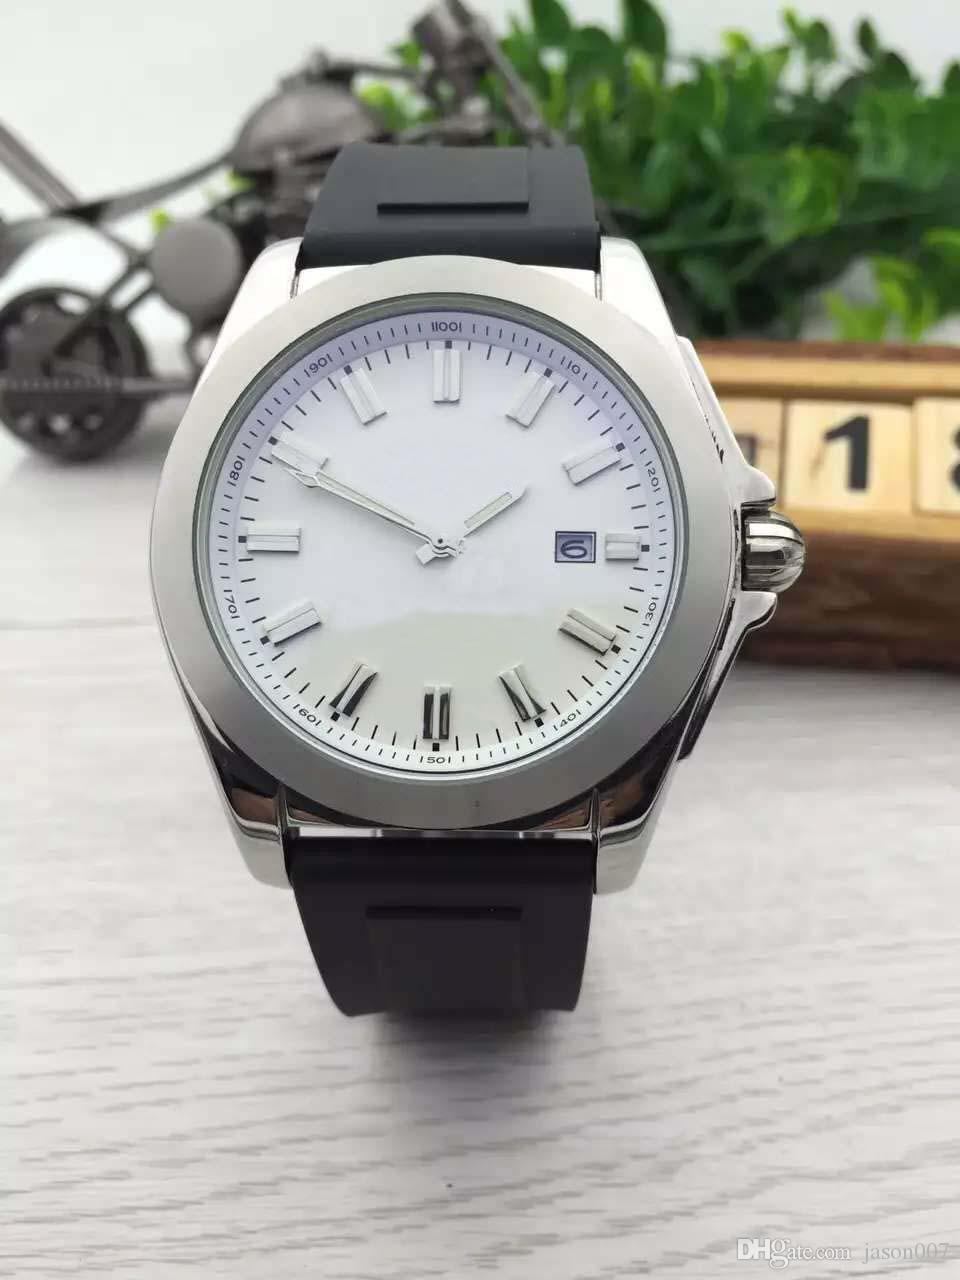 dress watch with rubber strap dhgate top seller new luxury brand watches men galactic white